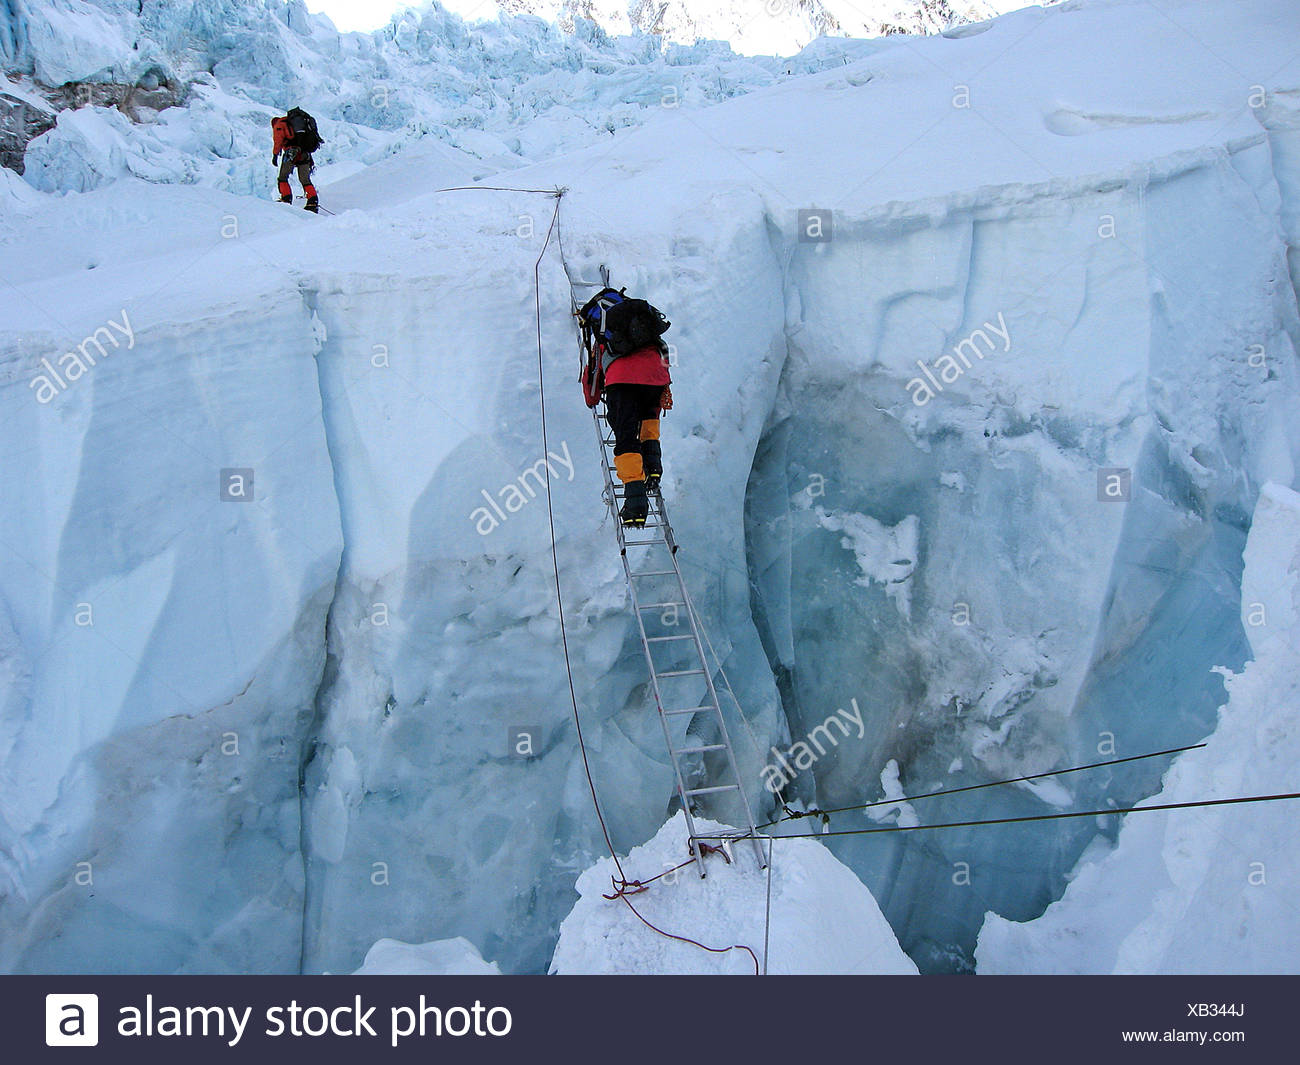 Viennese climber Geri Winkler on a ladder overcoming a crevasse of Khumbu Icefall, ca.5600 m, Mount Everest, Himalaya, Nepal - Stock Image